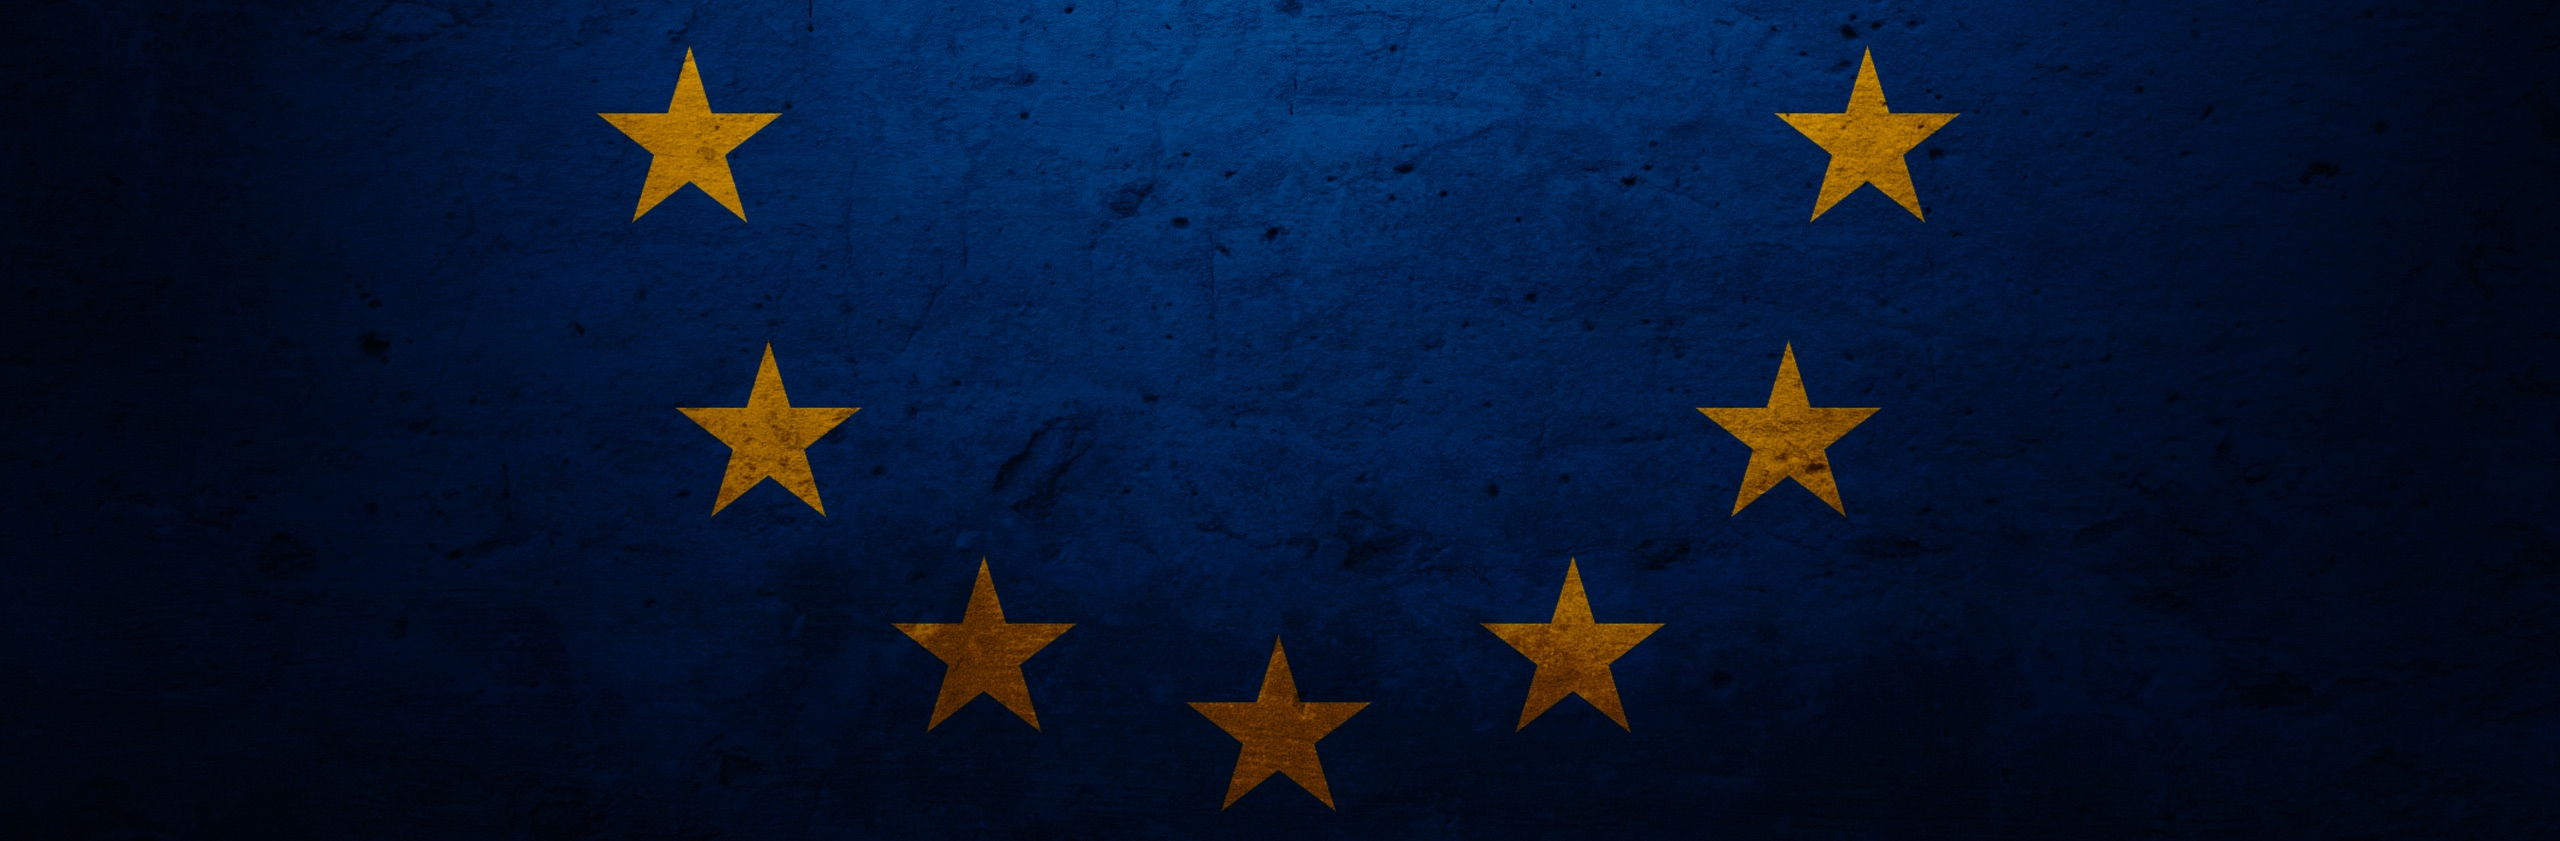 The Beginner's Guide To The GDPR